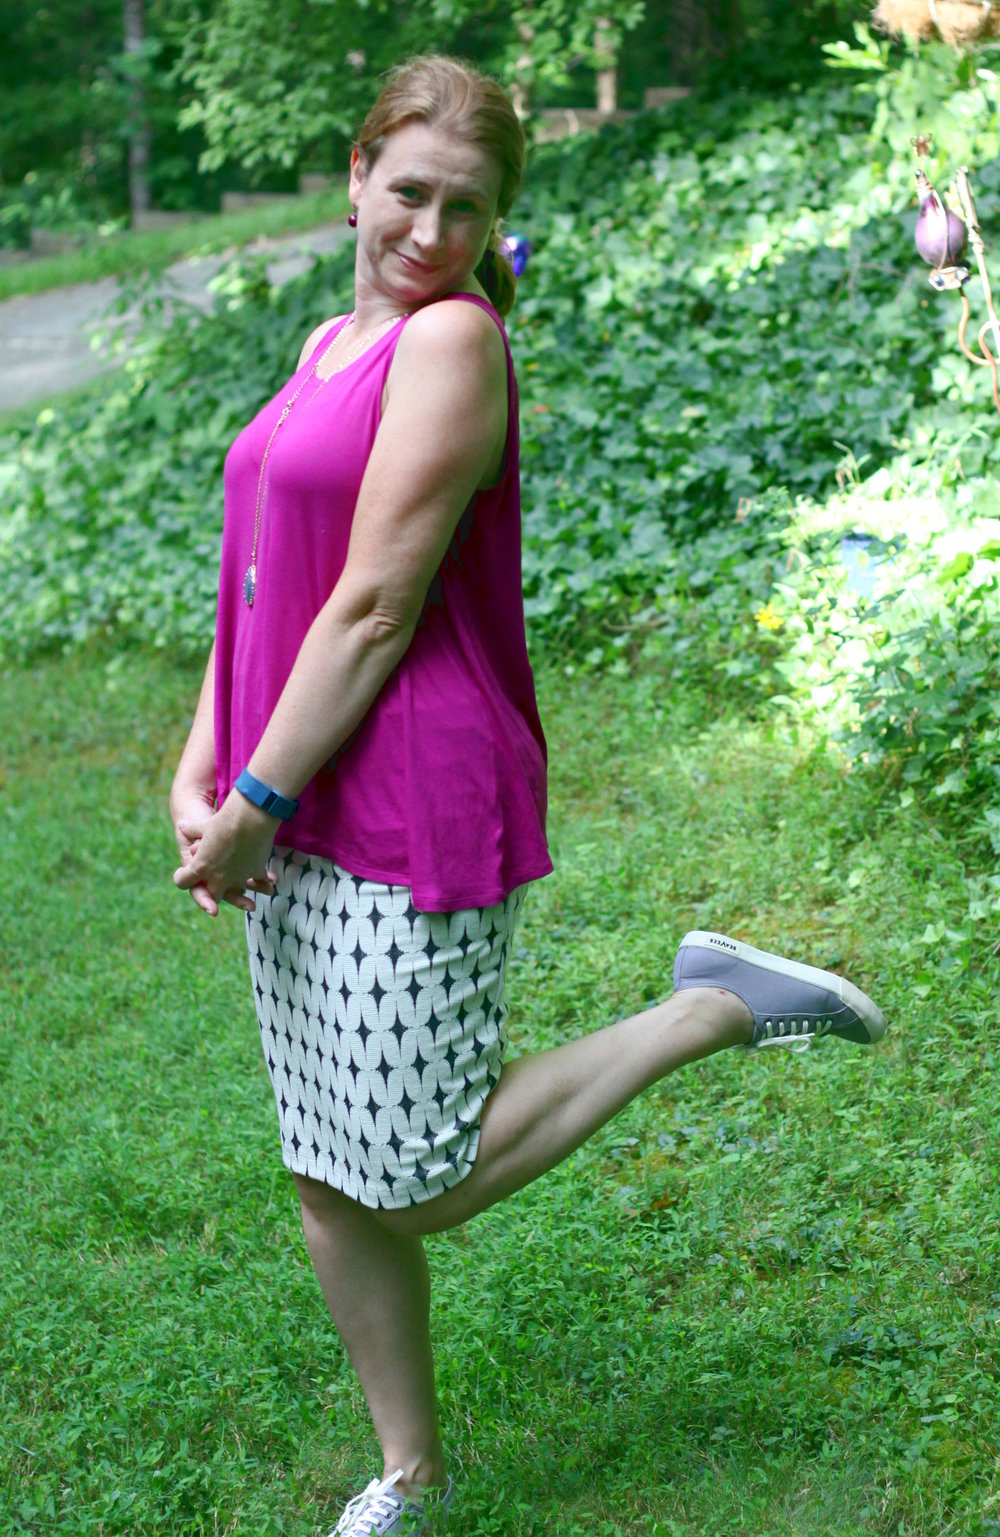 Leena Printed Skirt and Monterey Lace-up Sneakers all from my Stitch Fix, along with older  Stella & Dot  earrings, the  cabi Spring 2016  Sleeveless Swing Tee, and  Pendant Necklace with Teardrop Stone  from Target.